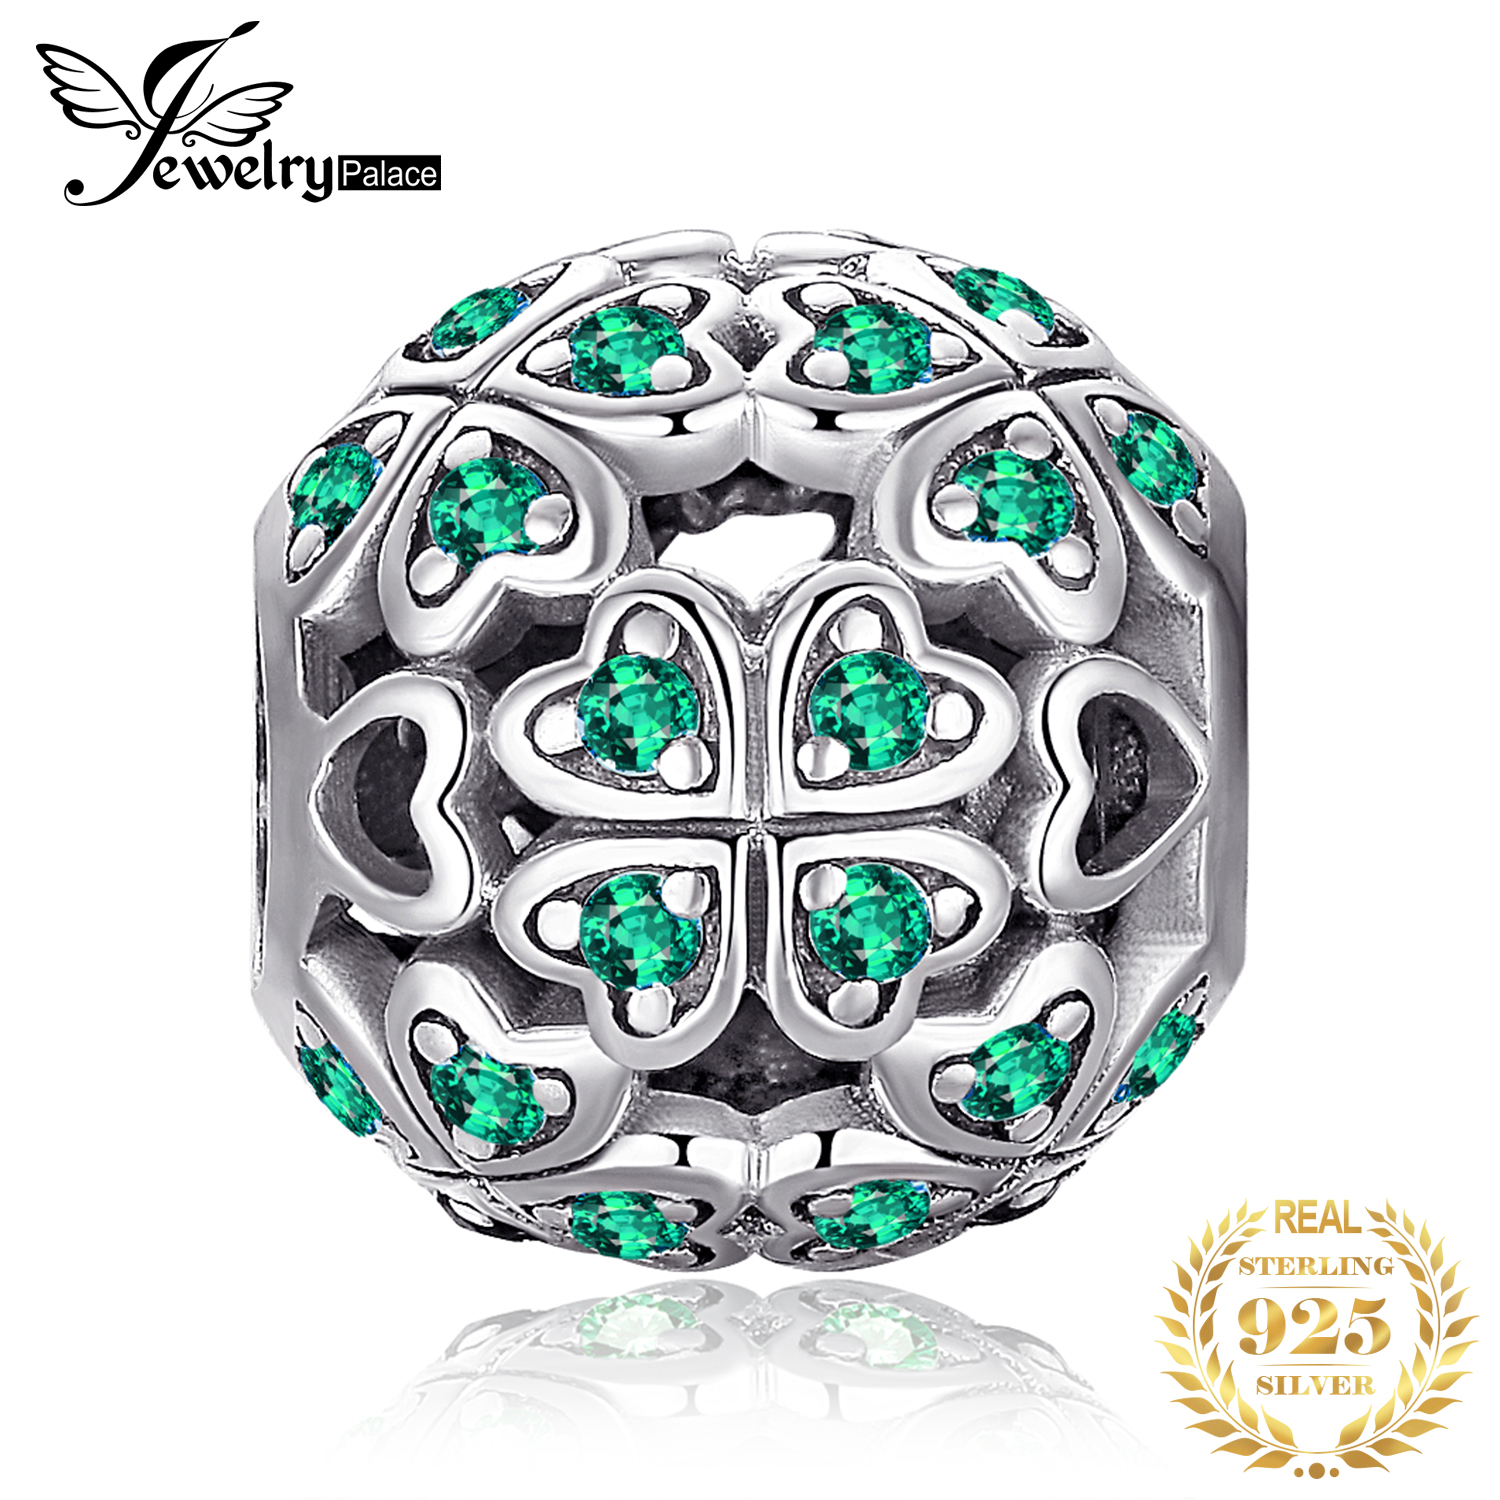 JewelryPalace Four Leaf 925 Sterling Silver Beads Charms Silver 925 Original For Bracelet Silver 925 Original For Jewelry Making